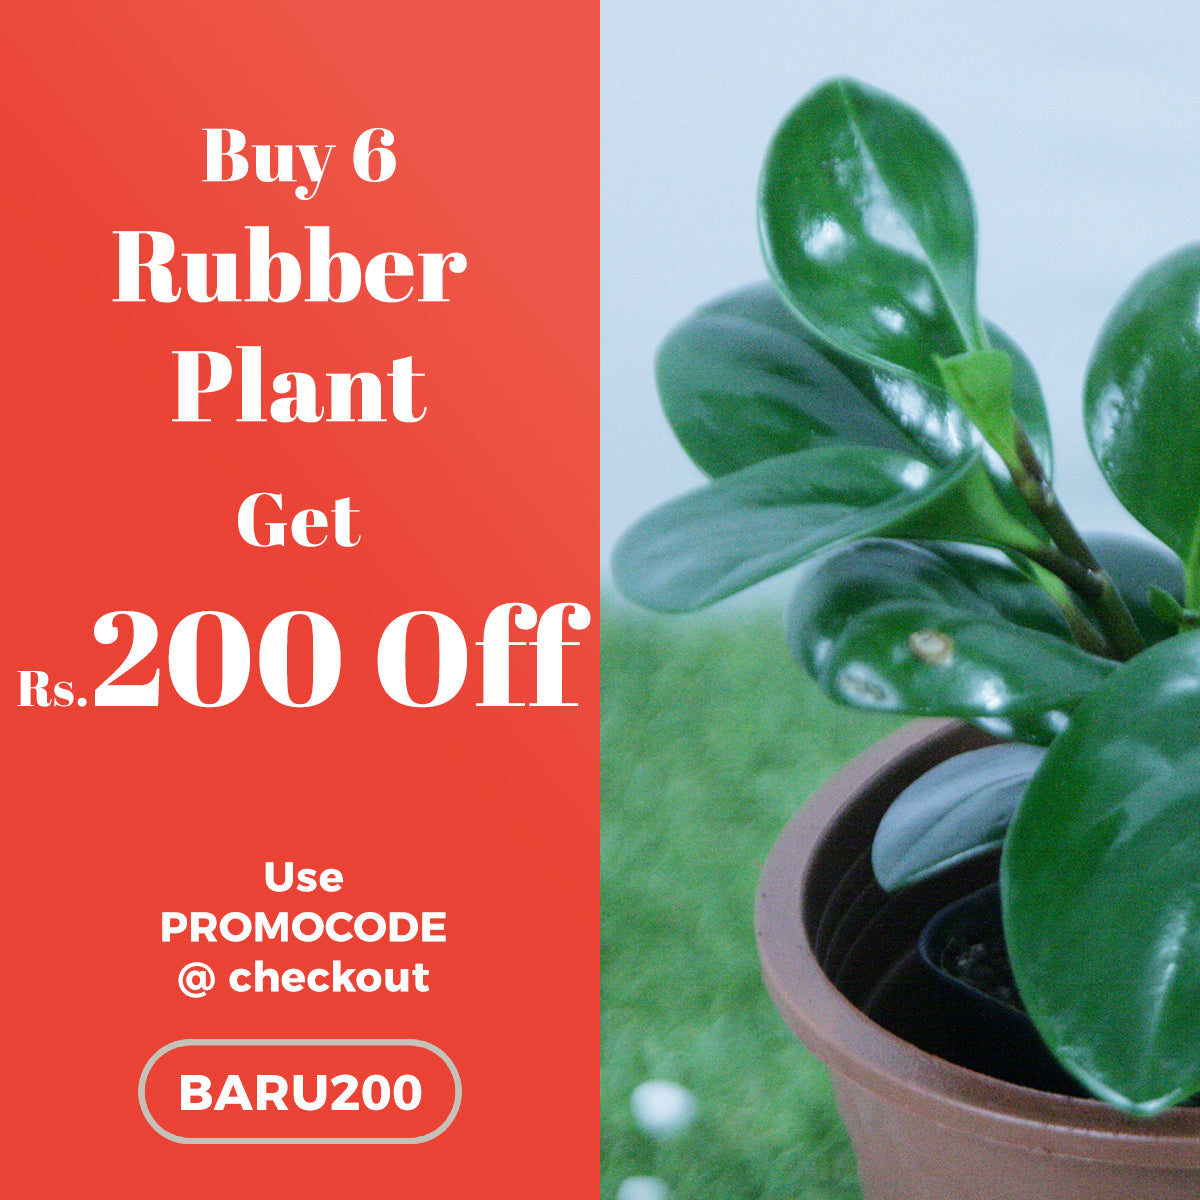 Buy 6 Baby Rubber Plant and get Rs.200 OFF